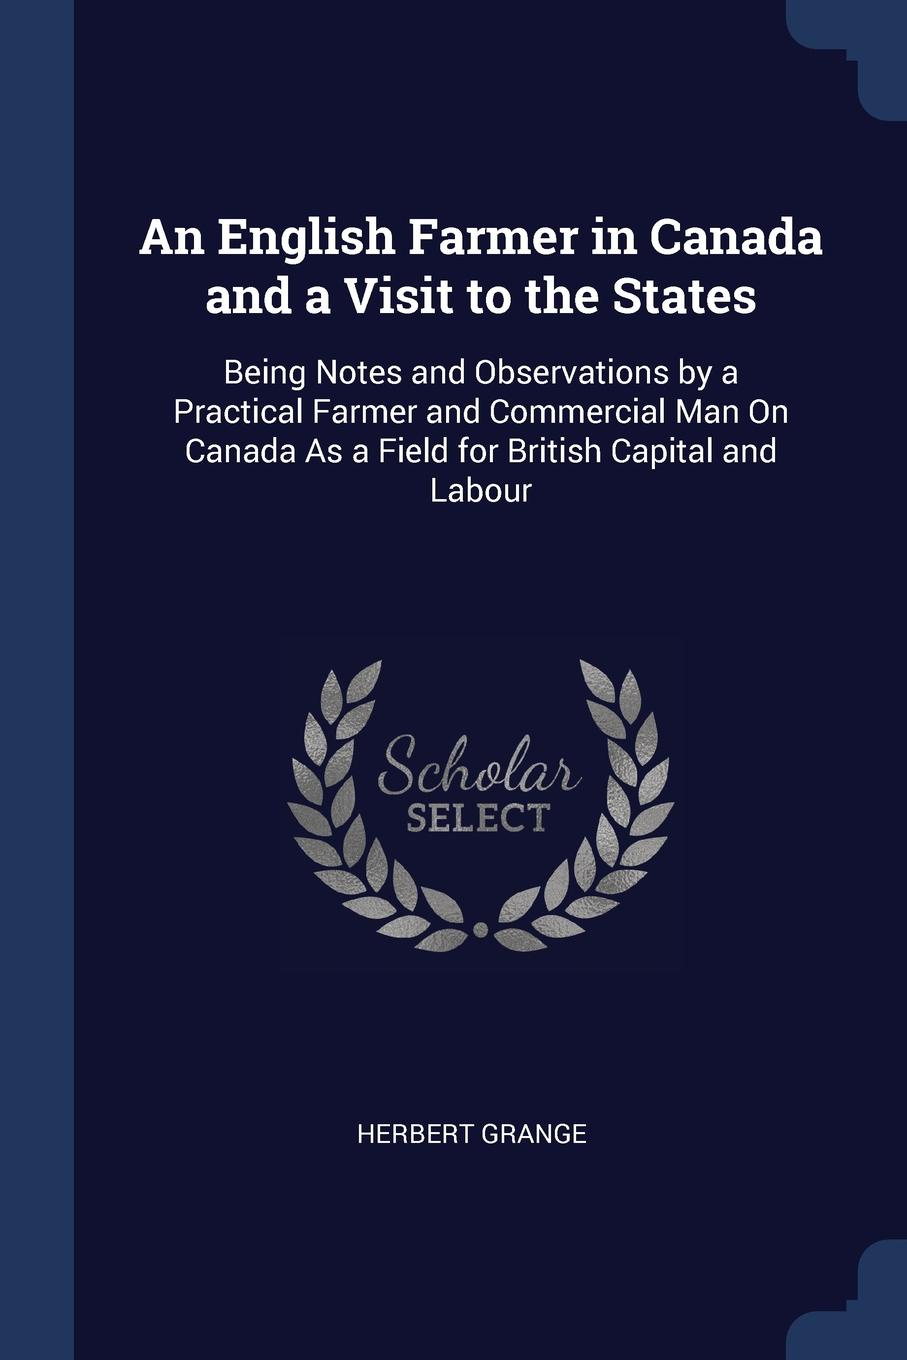 Herbert Grange An English Farmer in Canada and a Visit to the States. Being Notes Observations by Practical Commercial Man On As Field for British Capital Labour